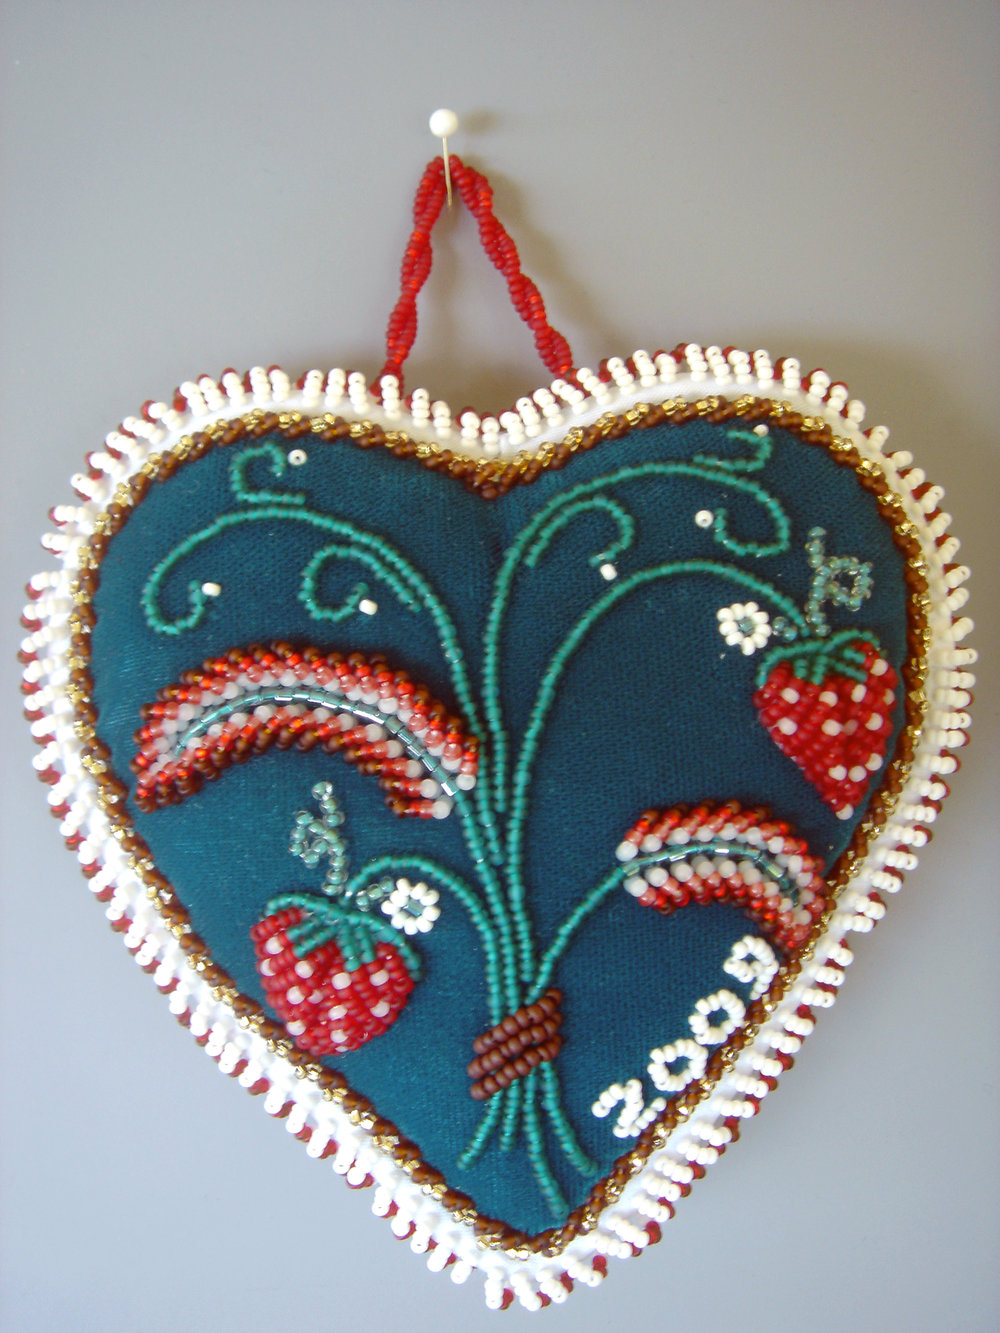 2009 - teal heart with strawberries.jpg